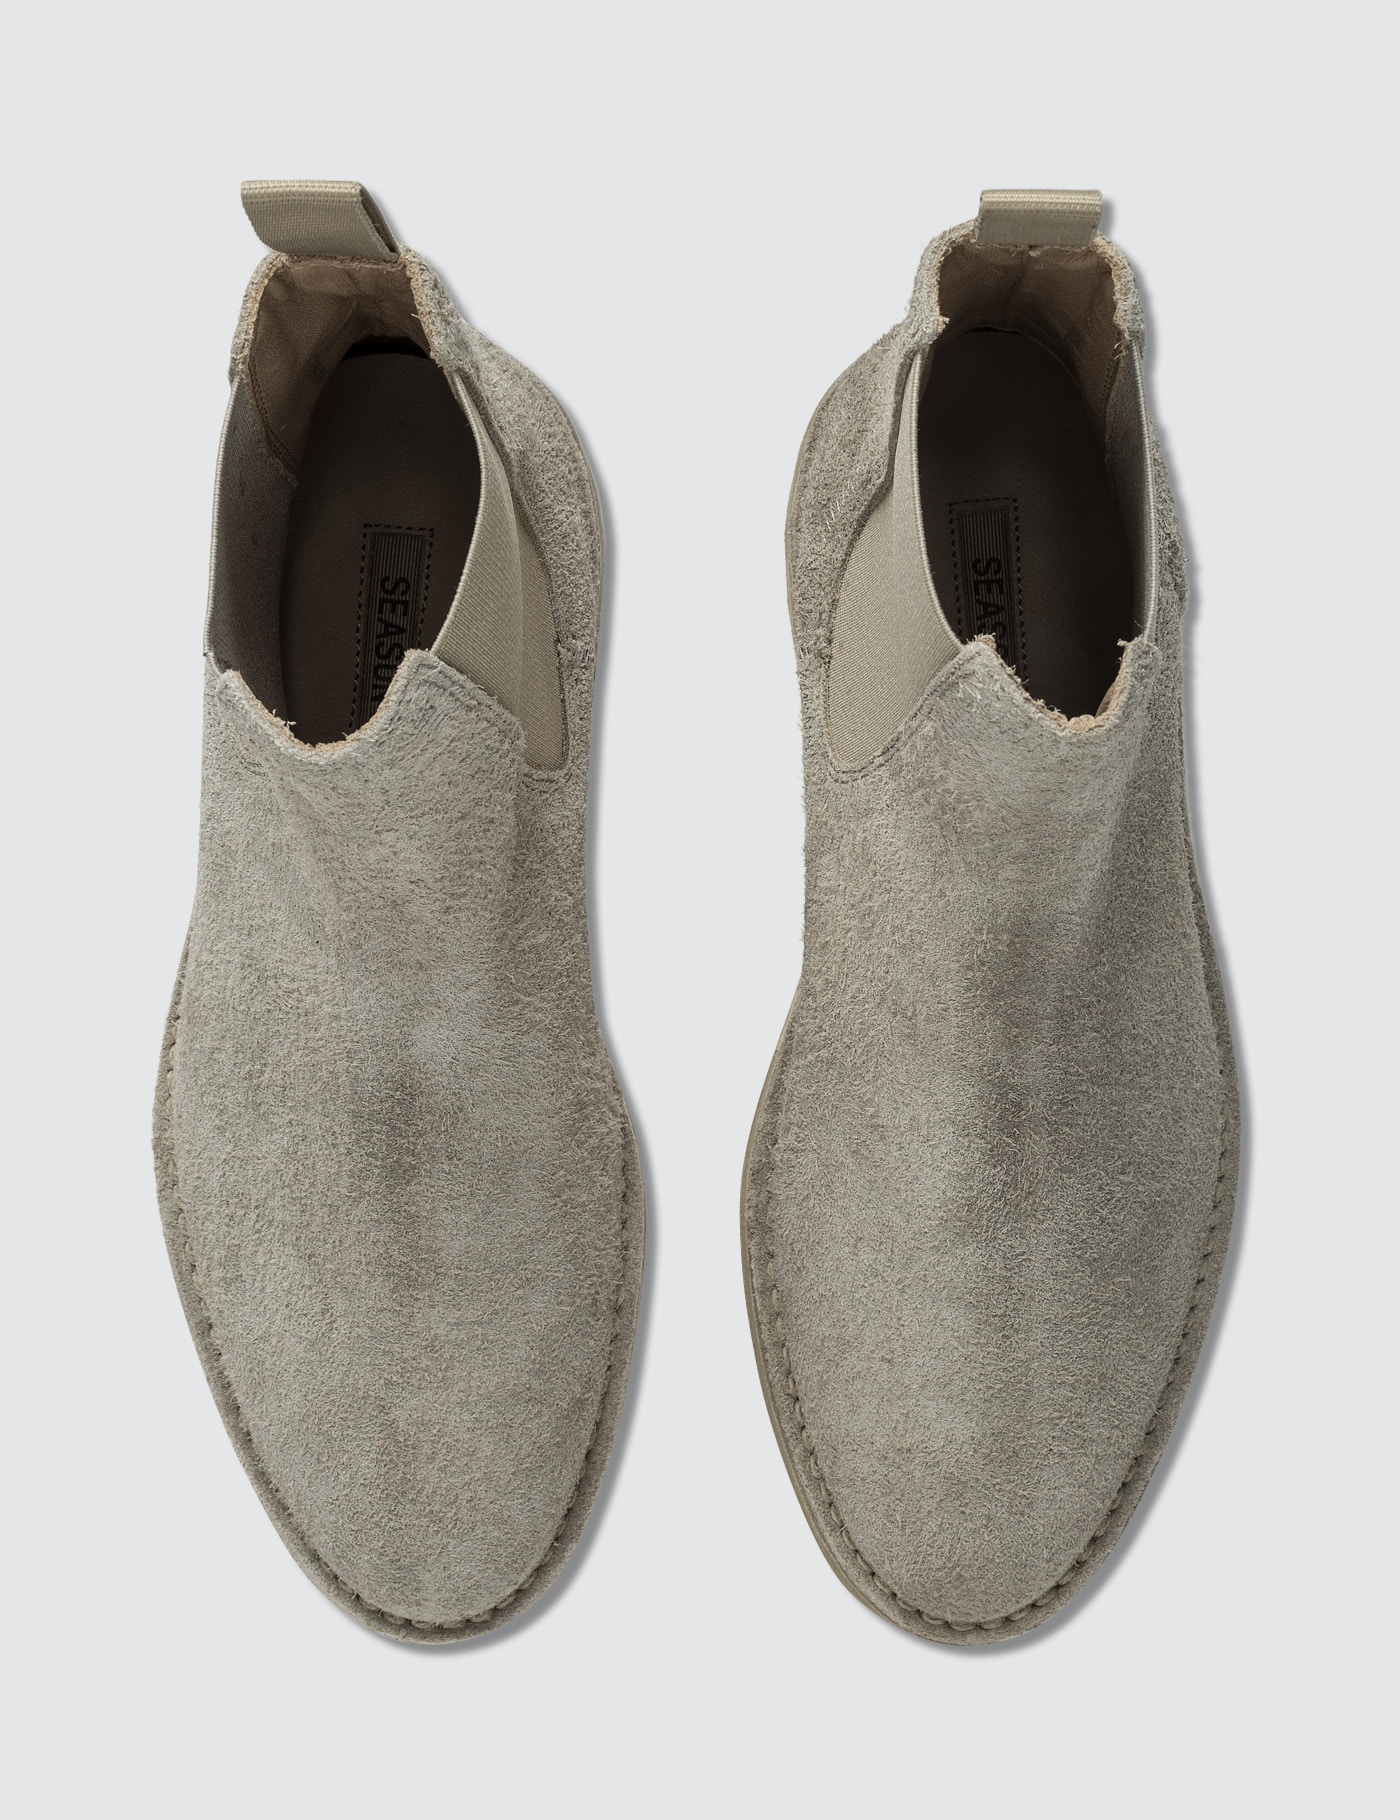 6c37f3cf332 Buy Original Yeezy Season 6 Chelsea Boot In Suede at Indonesia ...